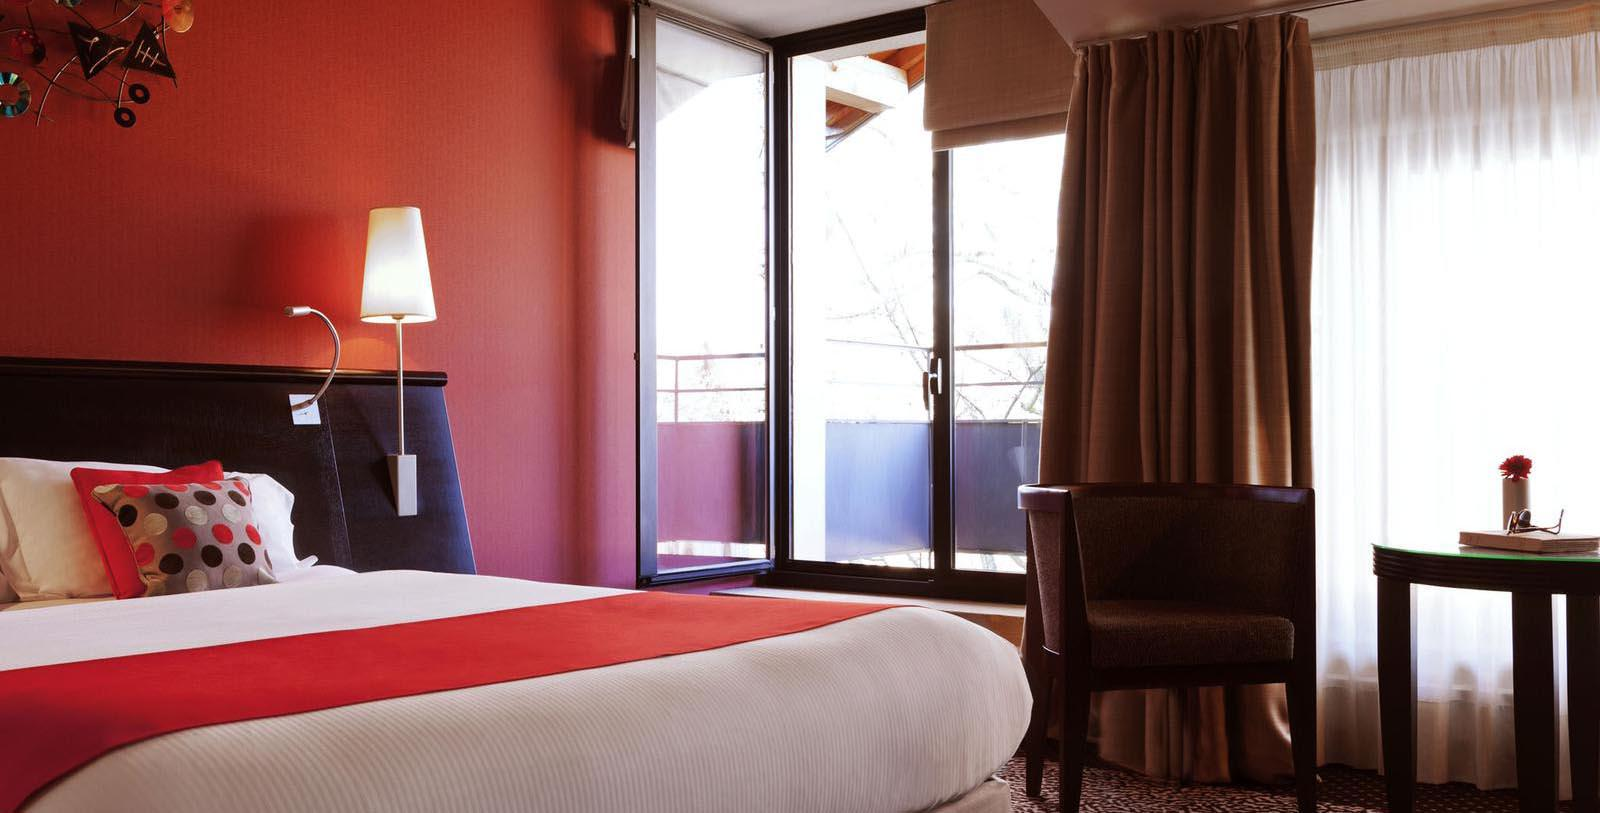 Image of Guestroom Interior, Hotel La Citadelle Metz - MGallery by Sofitel, Metz, France, 1559, Member of Historic Hotels Worldwide, Location Map